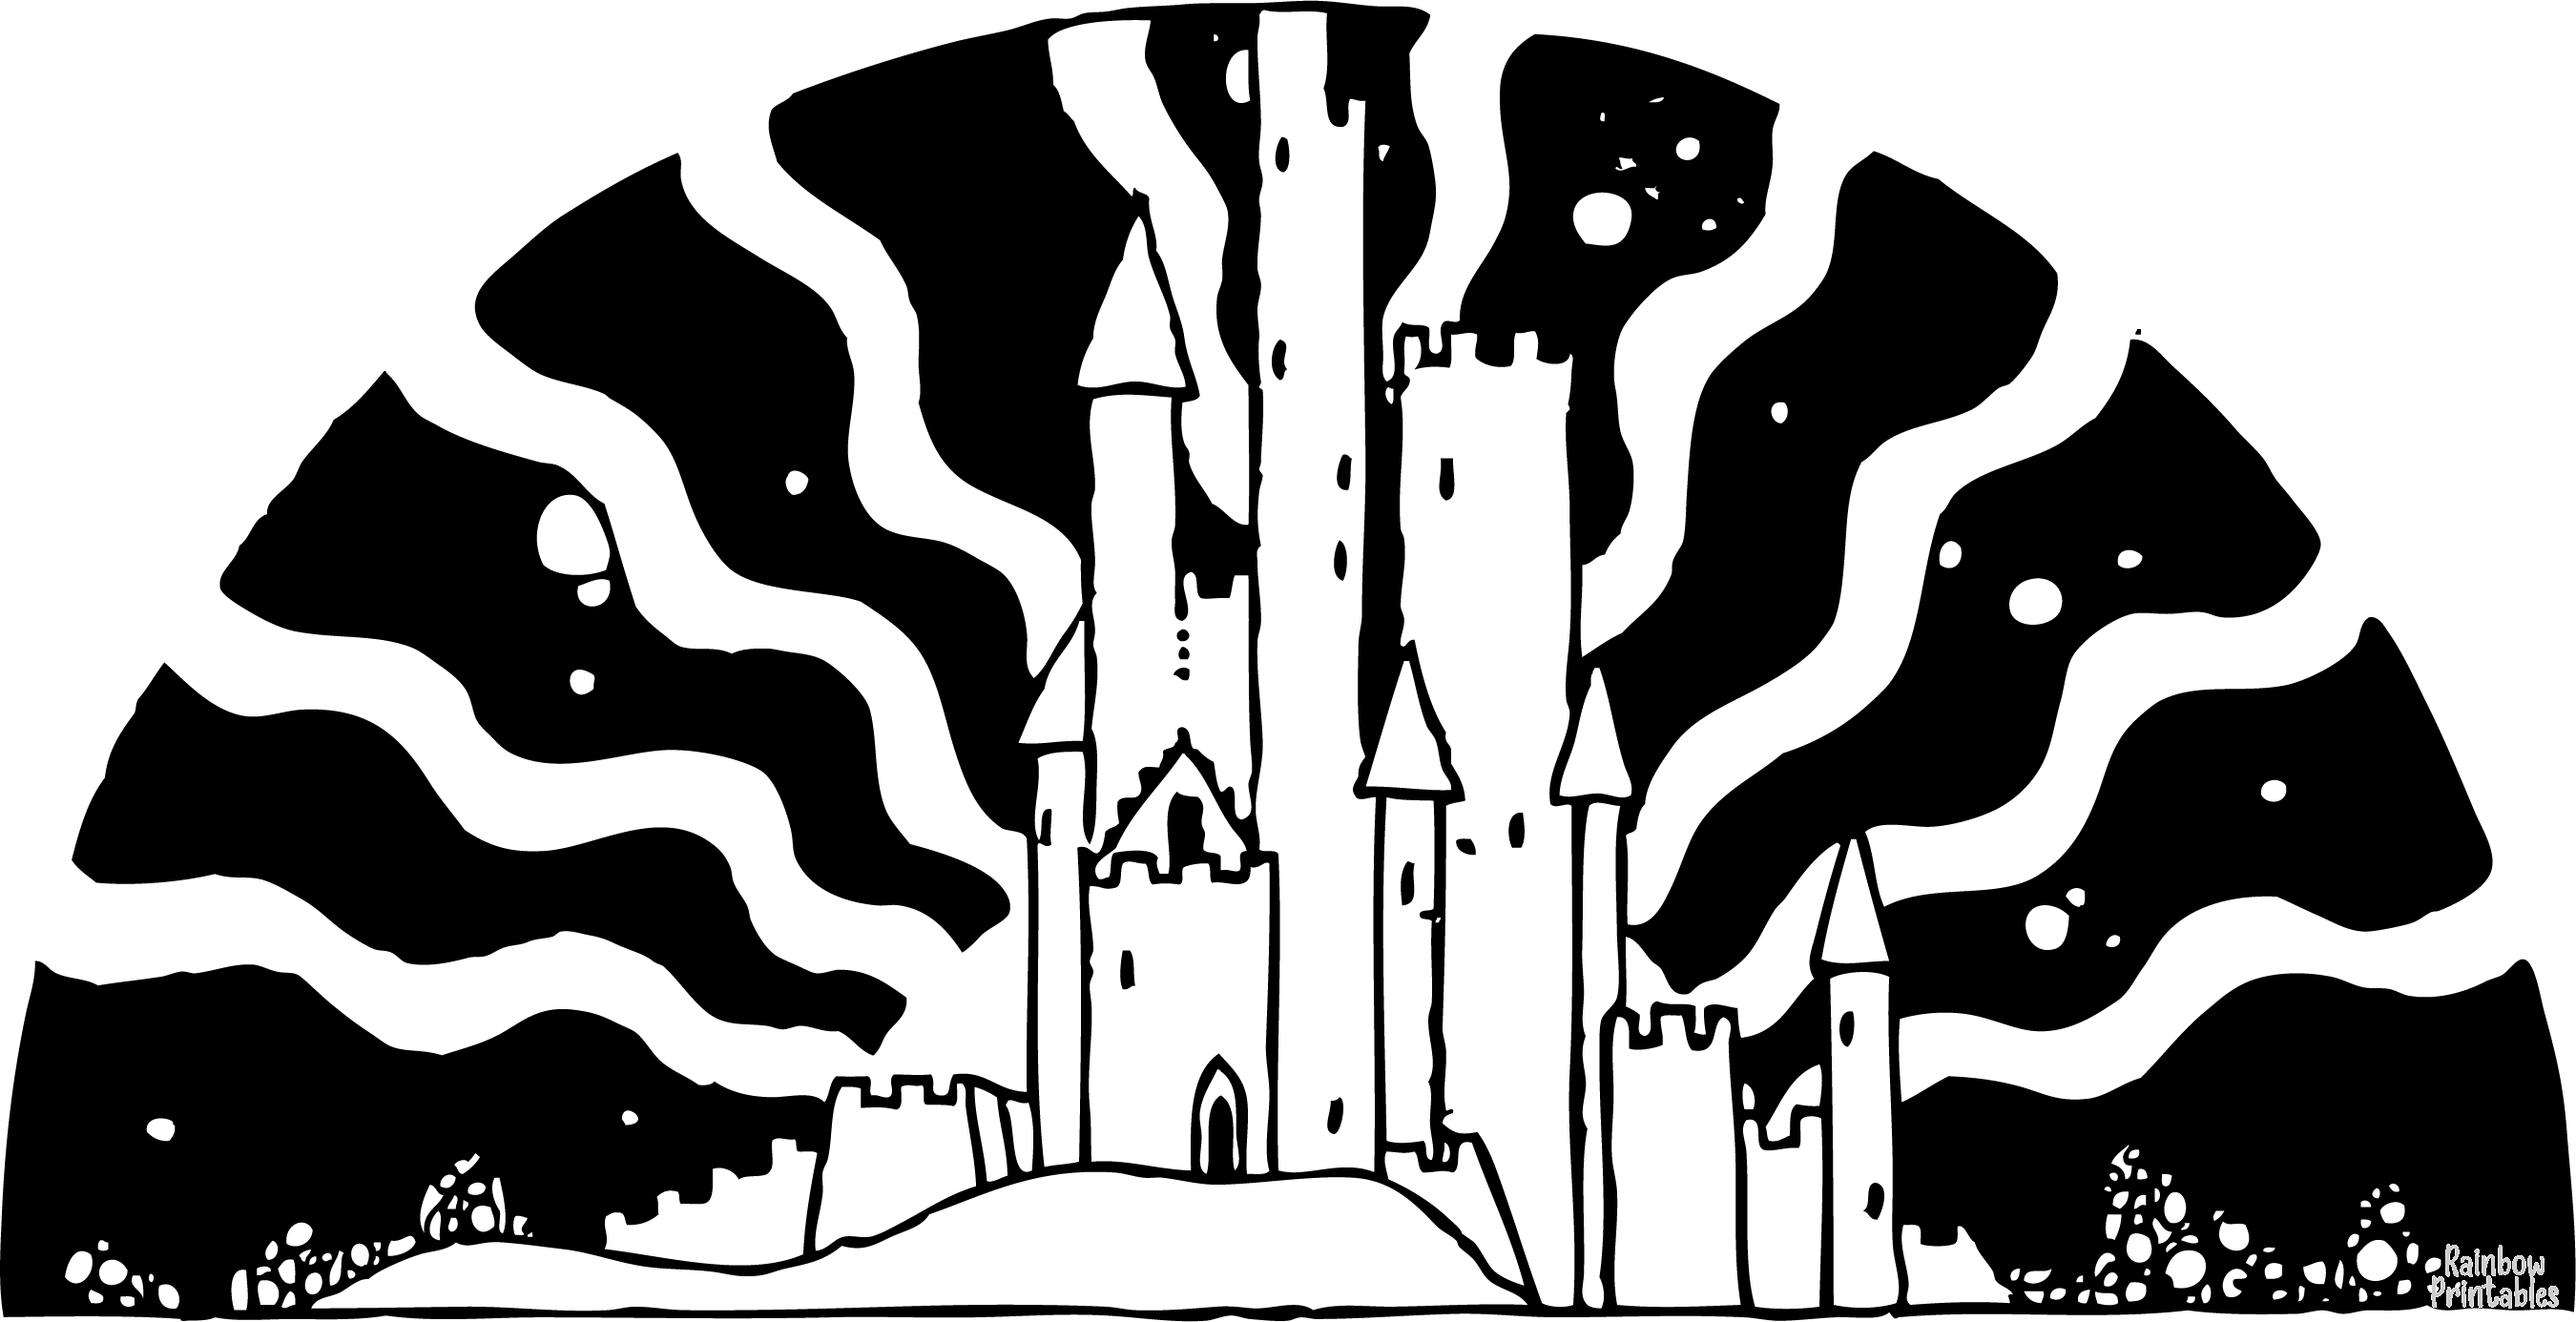 Coloring-Activity-Enchanted Castle Coloring Page for Kids